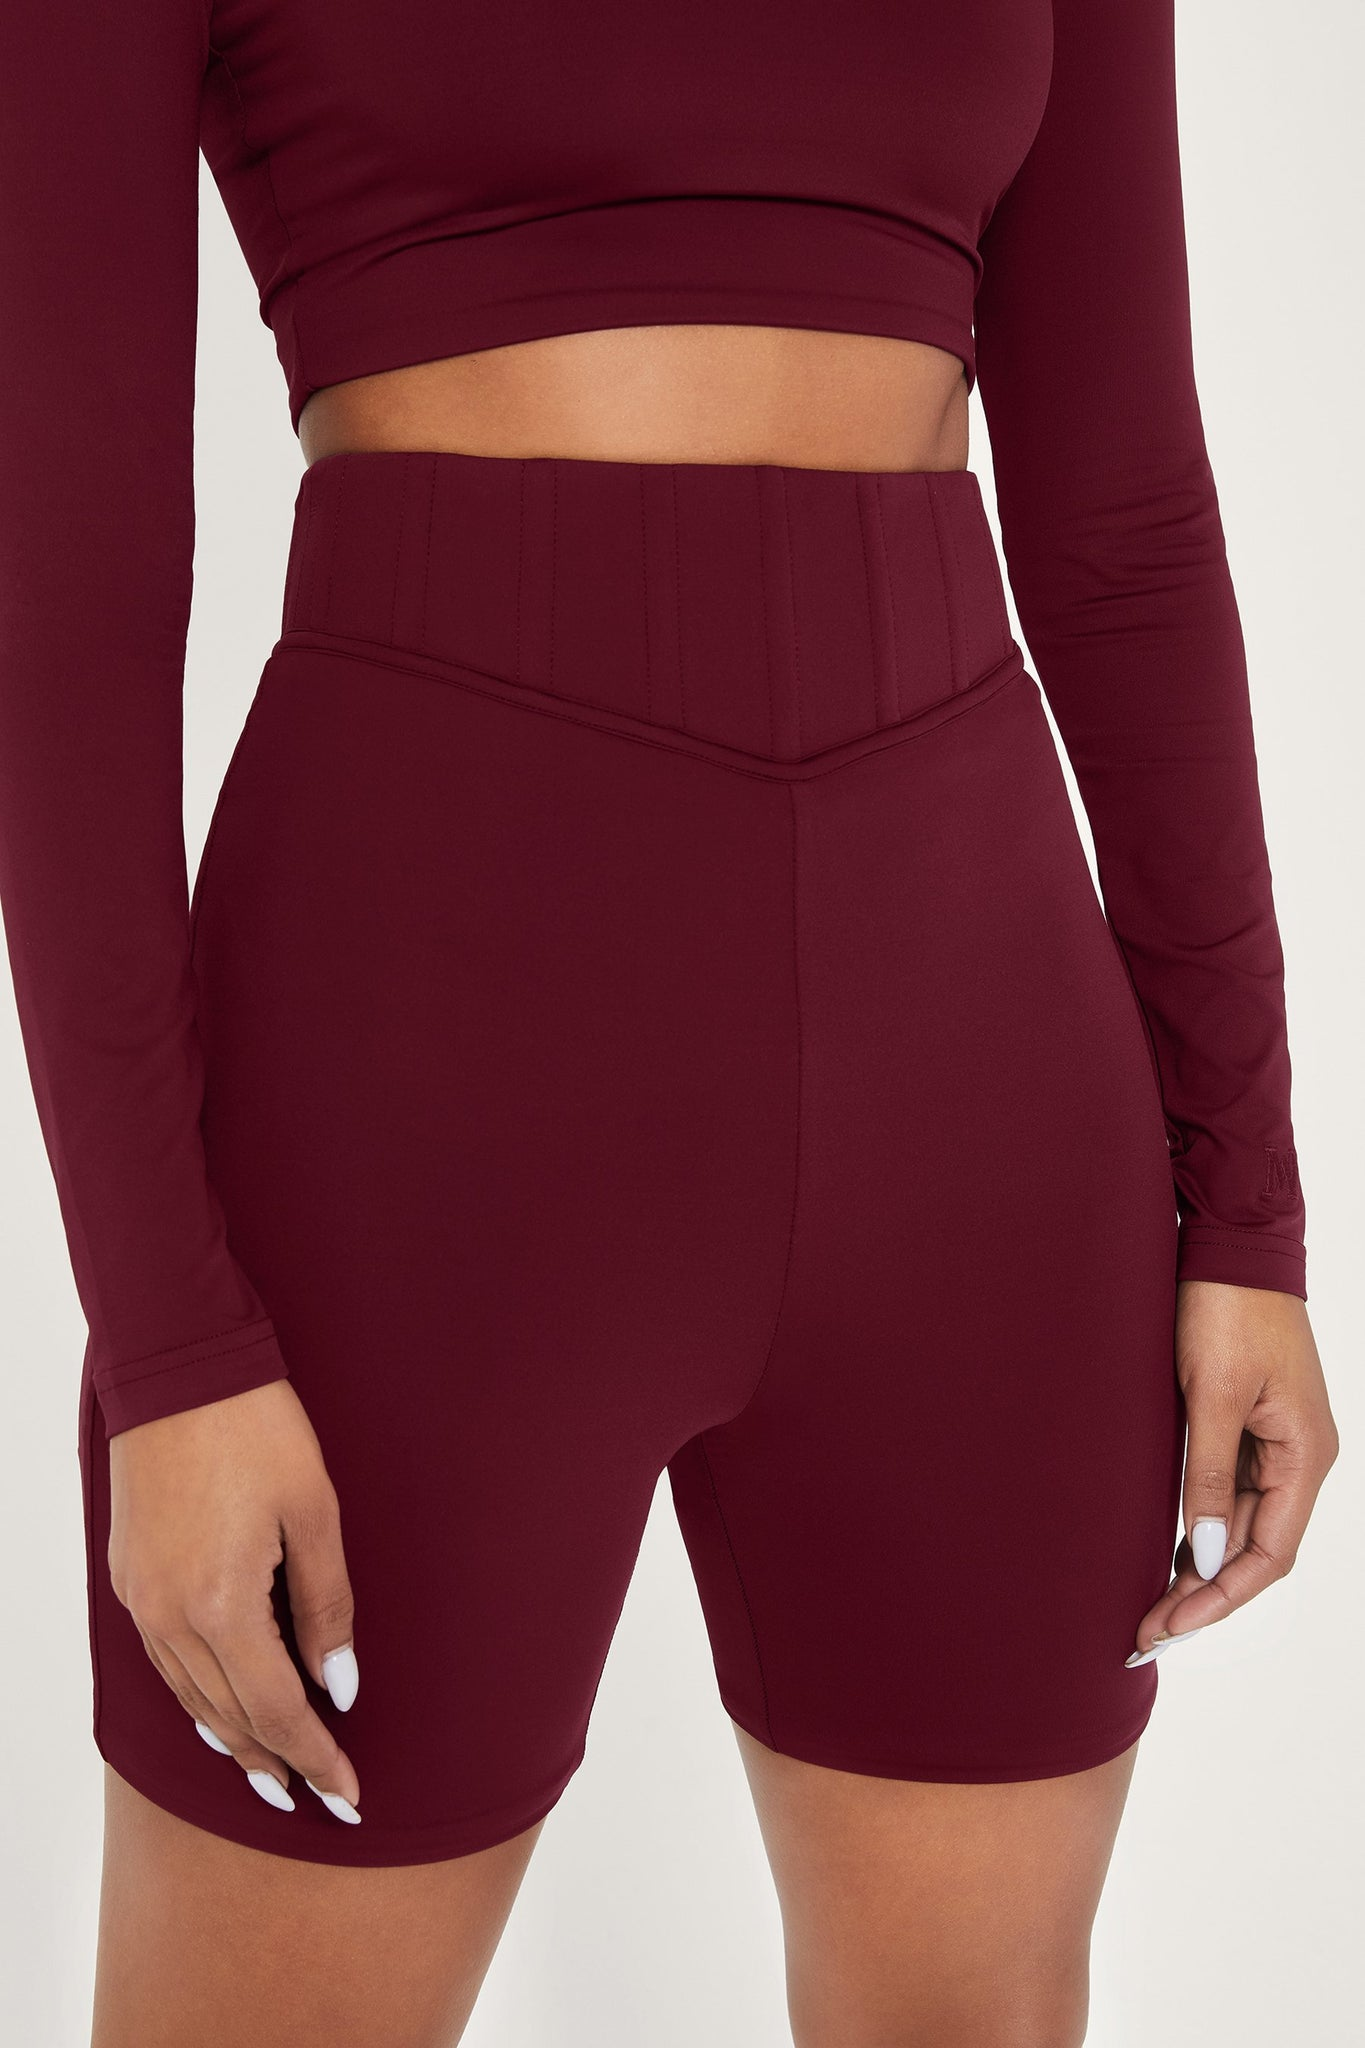 Chaya High Waisted Boned Bike Short - Burgundy - MESHKI